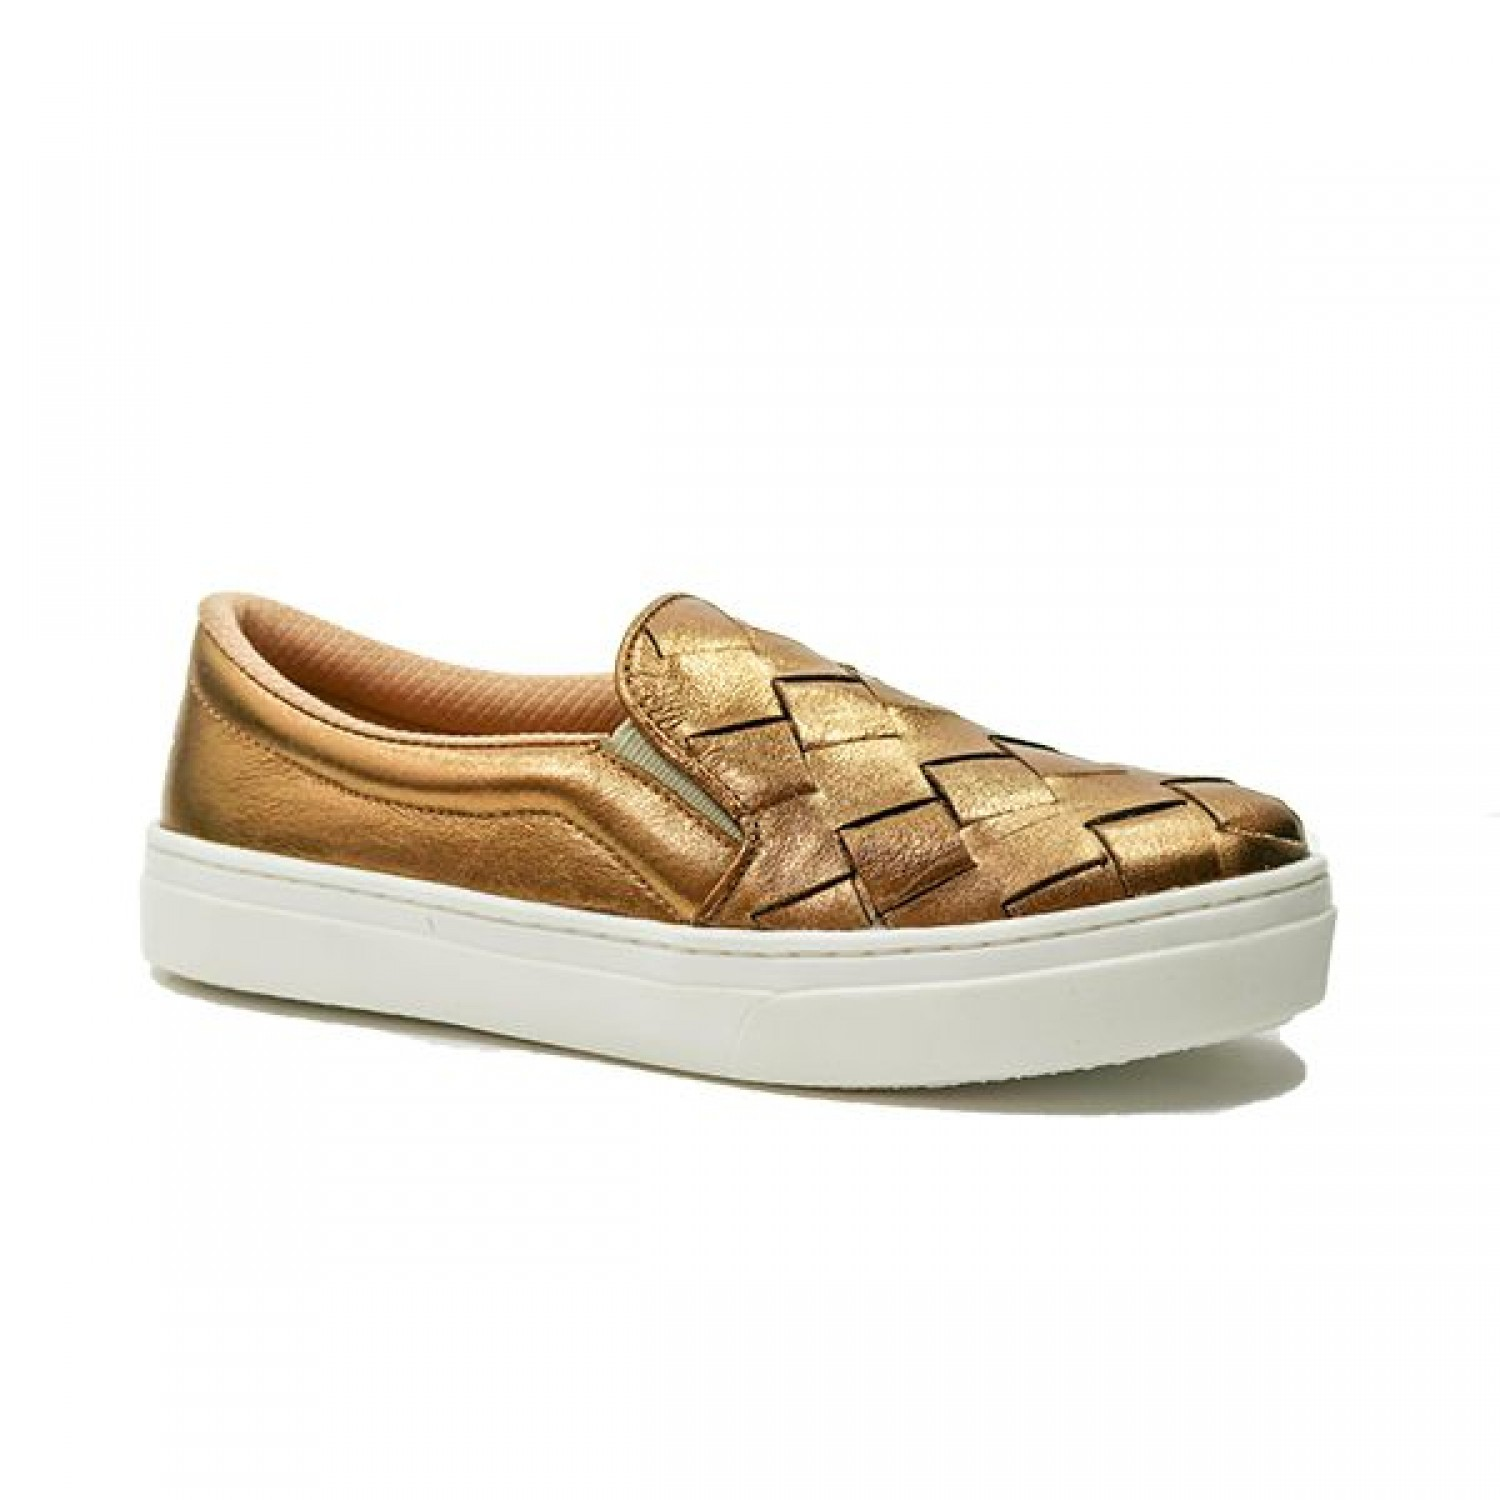 TÊNIS SLIP ON BRONZE